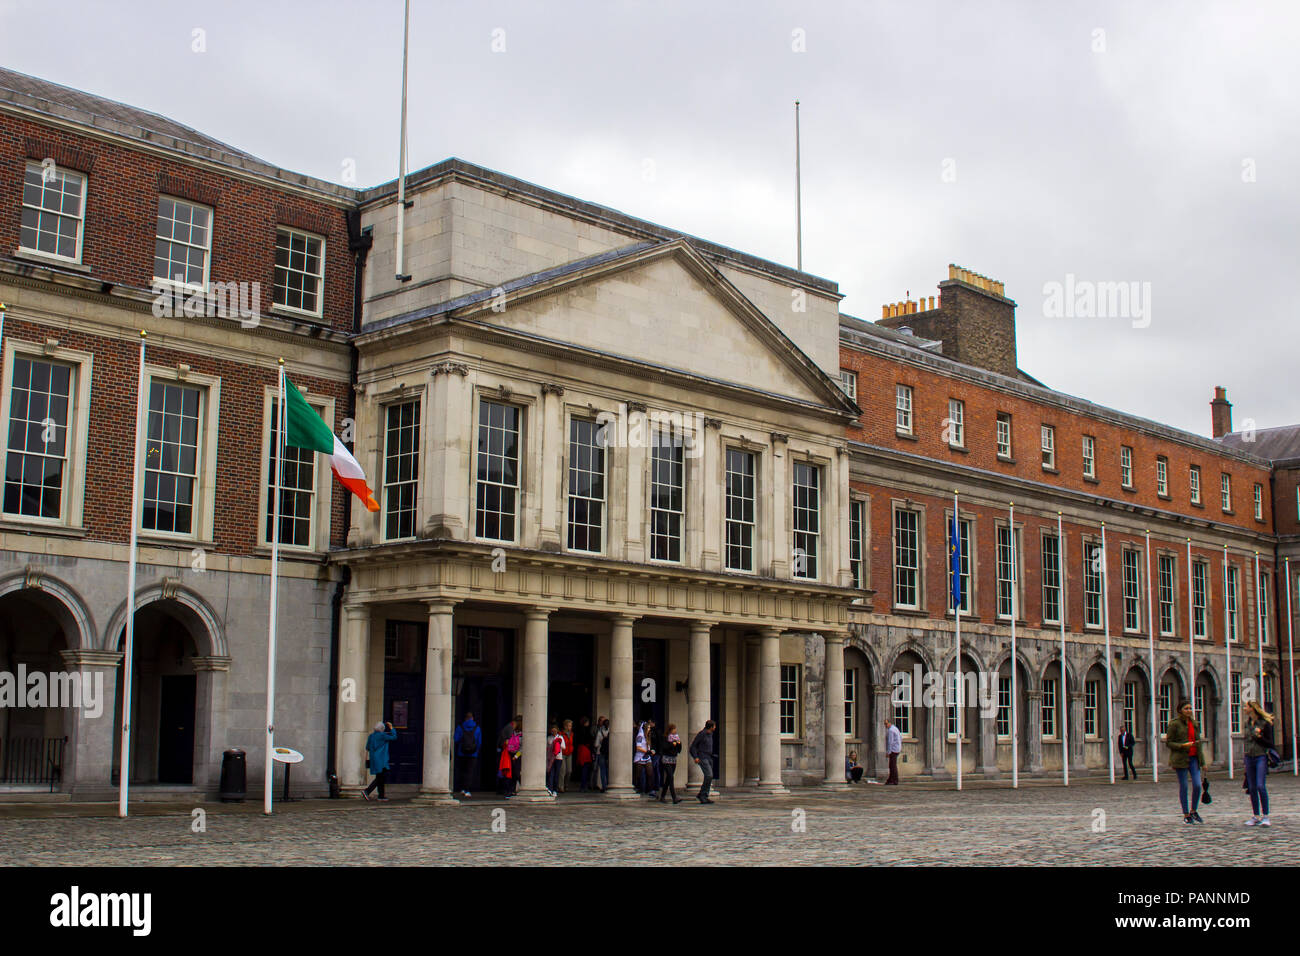 The entrance to the state apartments in the Upper Courtyard of Dublin Castle Ireland - Stock Image